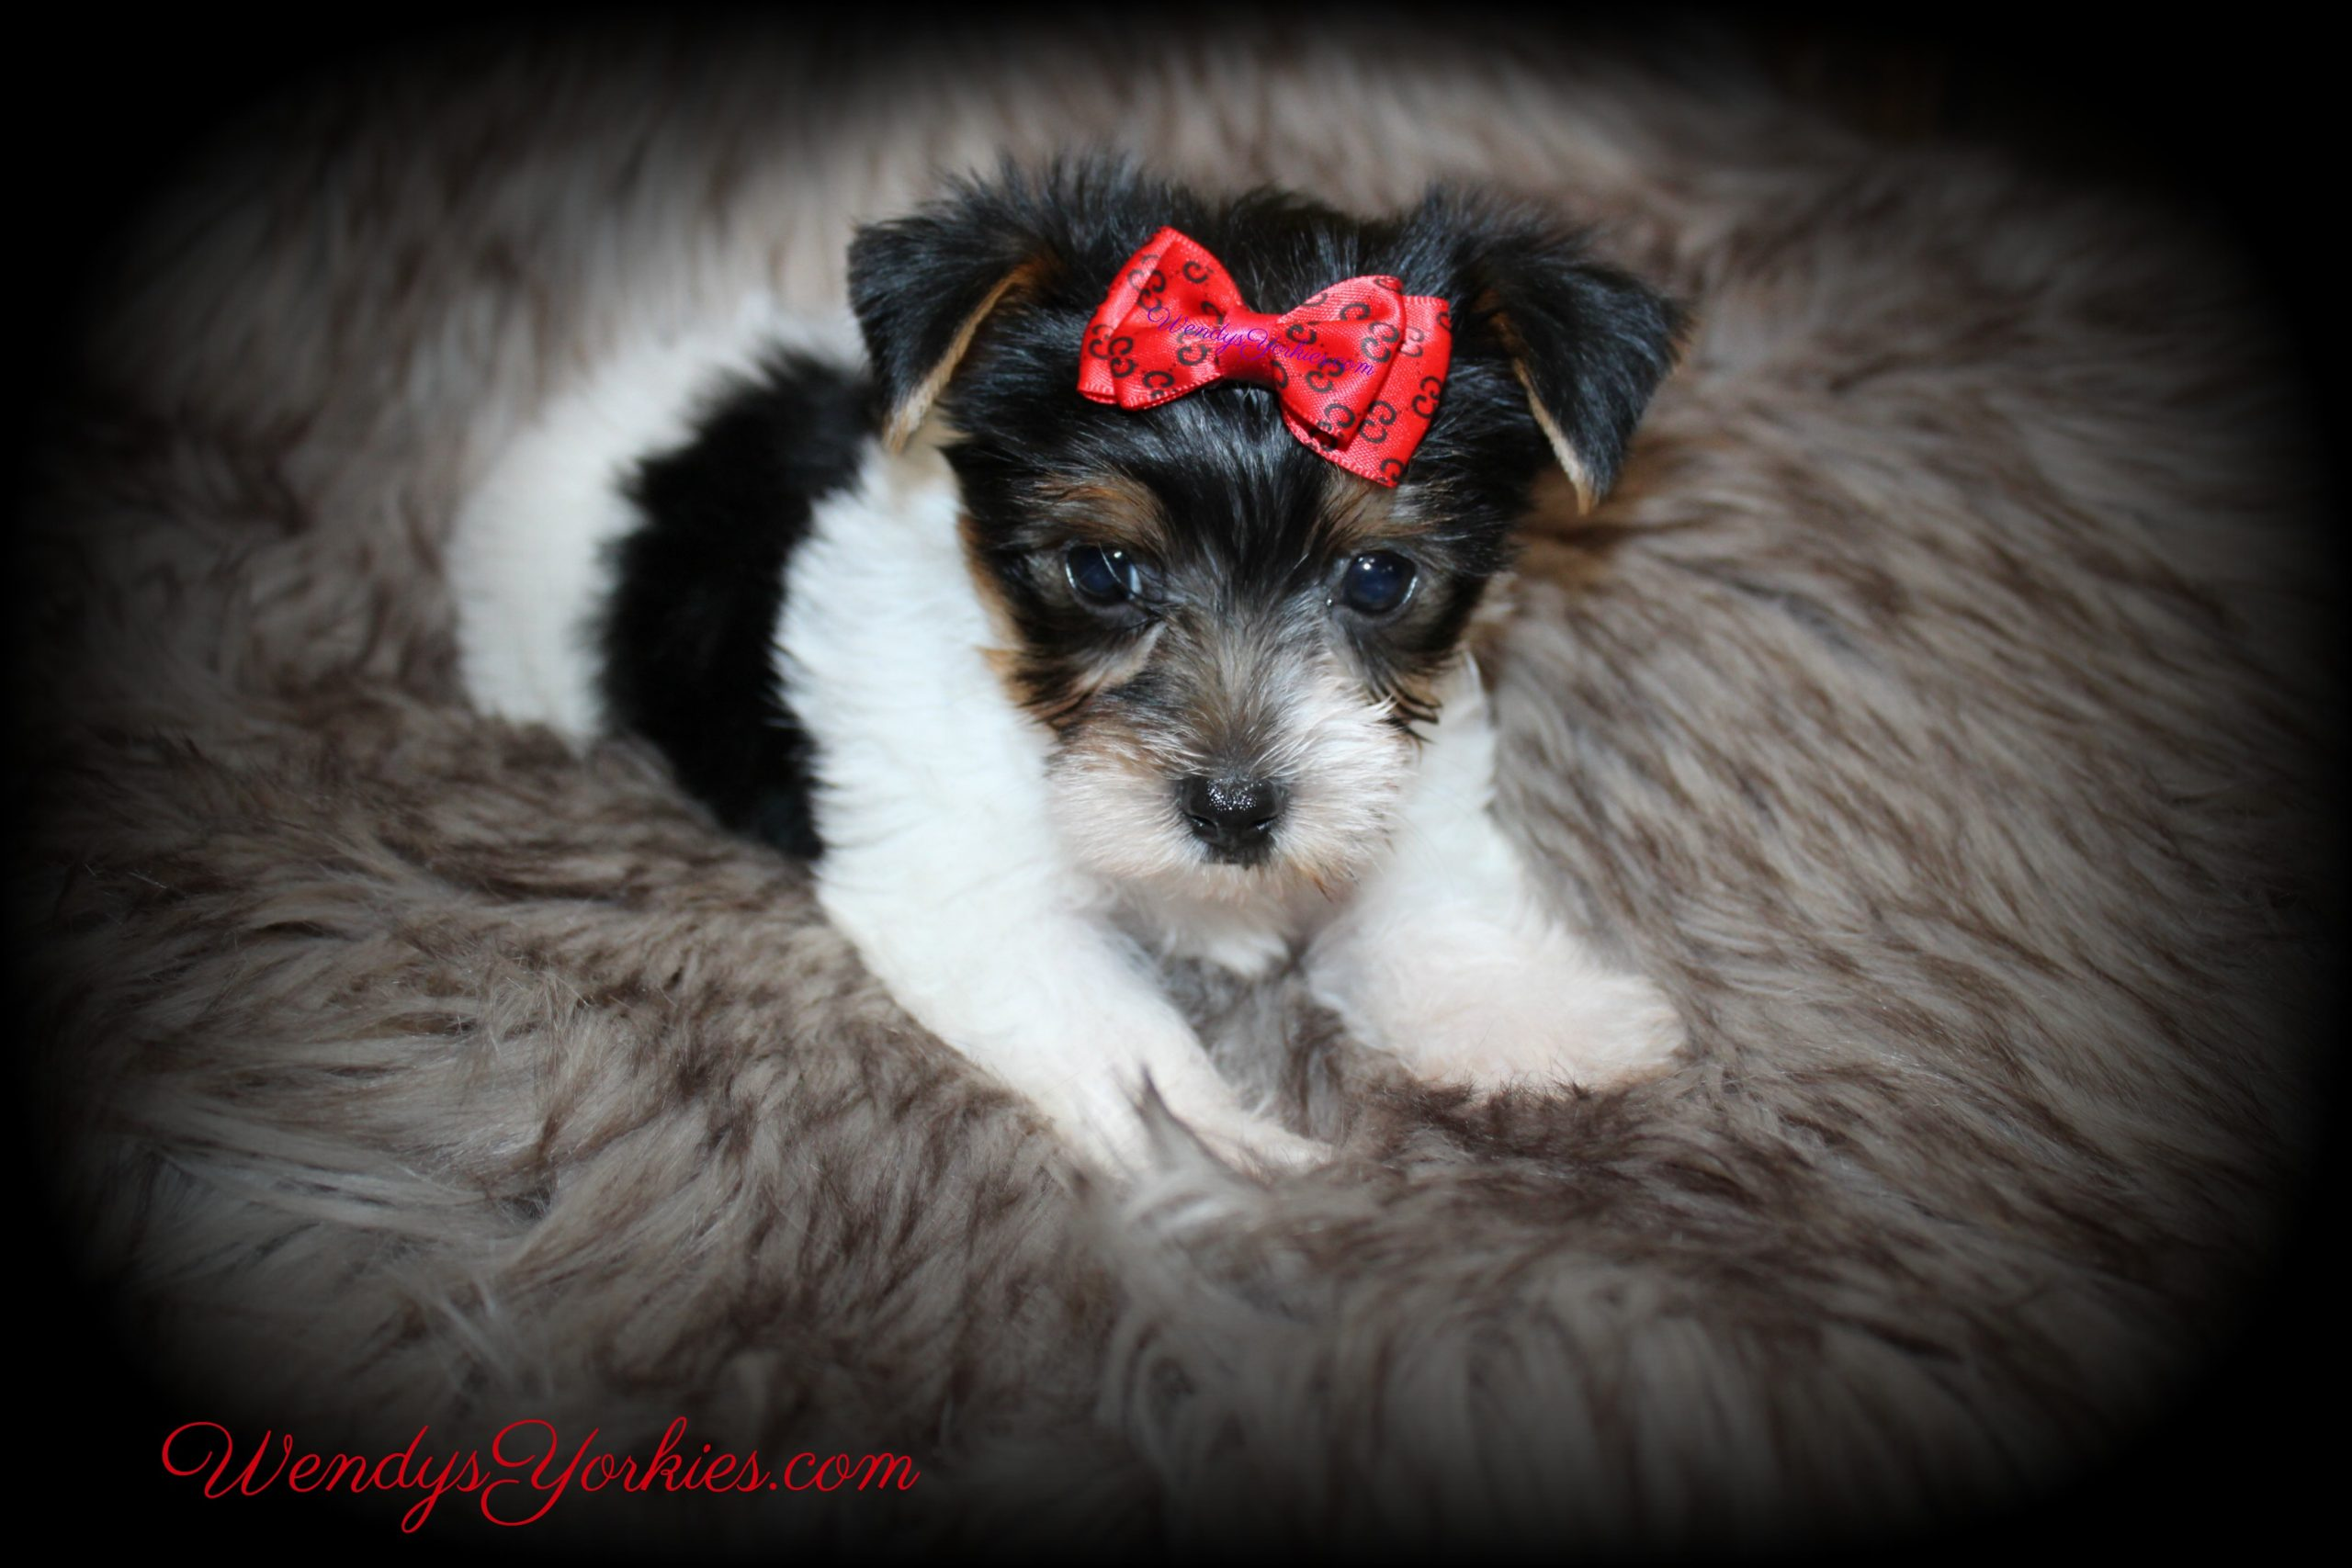 Parti Yorkie puppies for sale in Texas, Sugar pm2, WendysYorkies.com